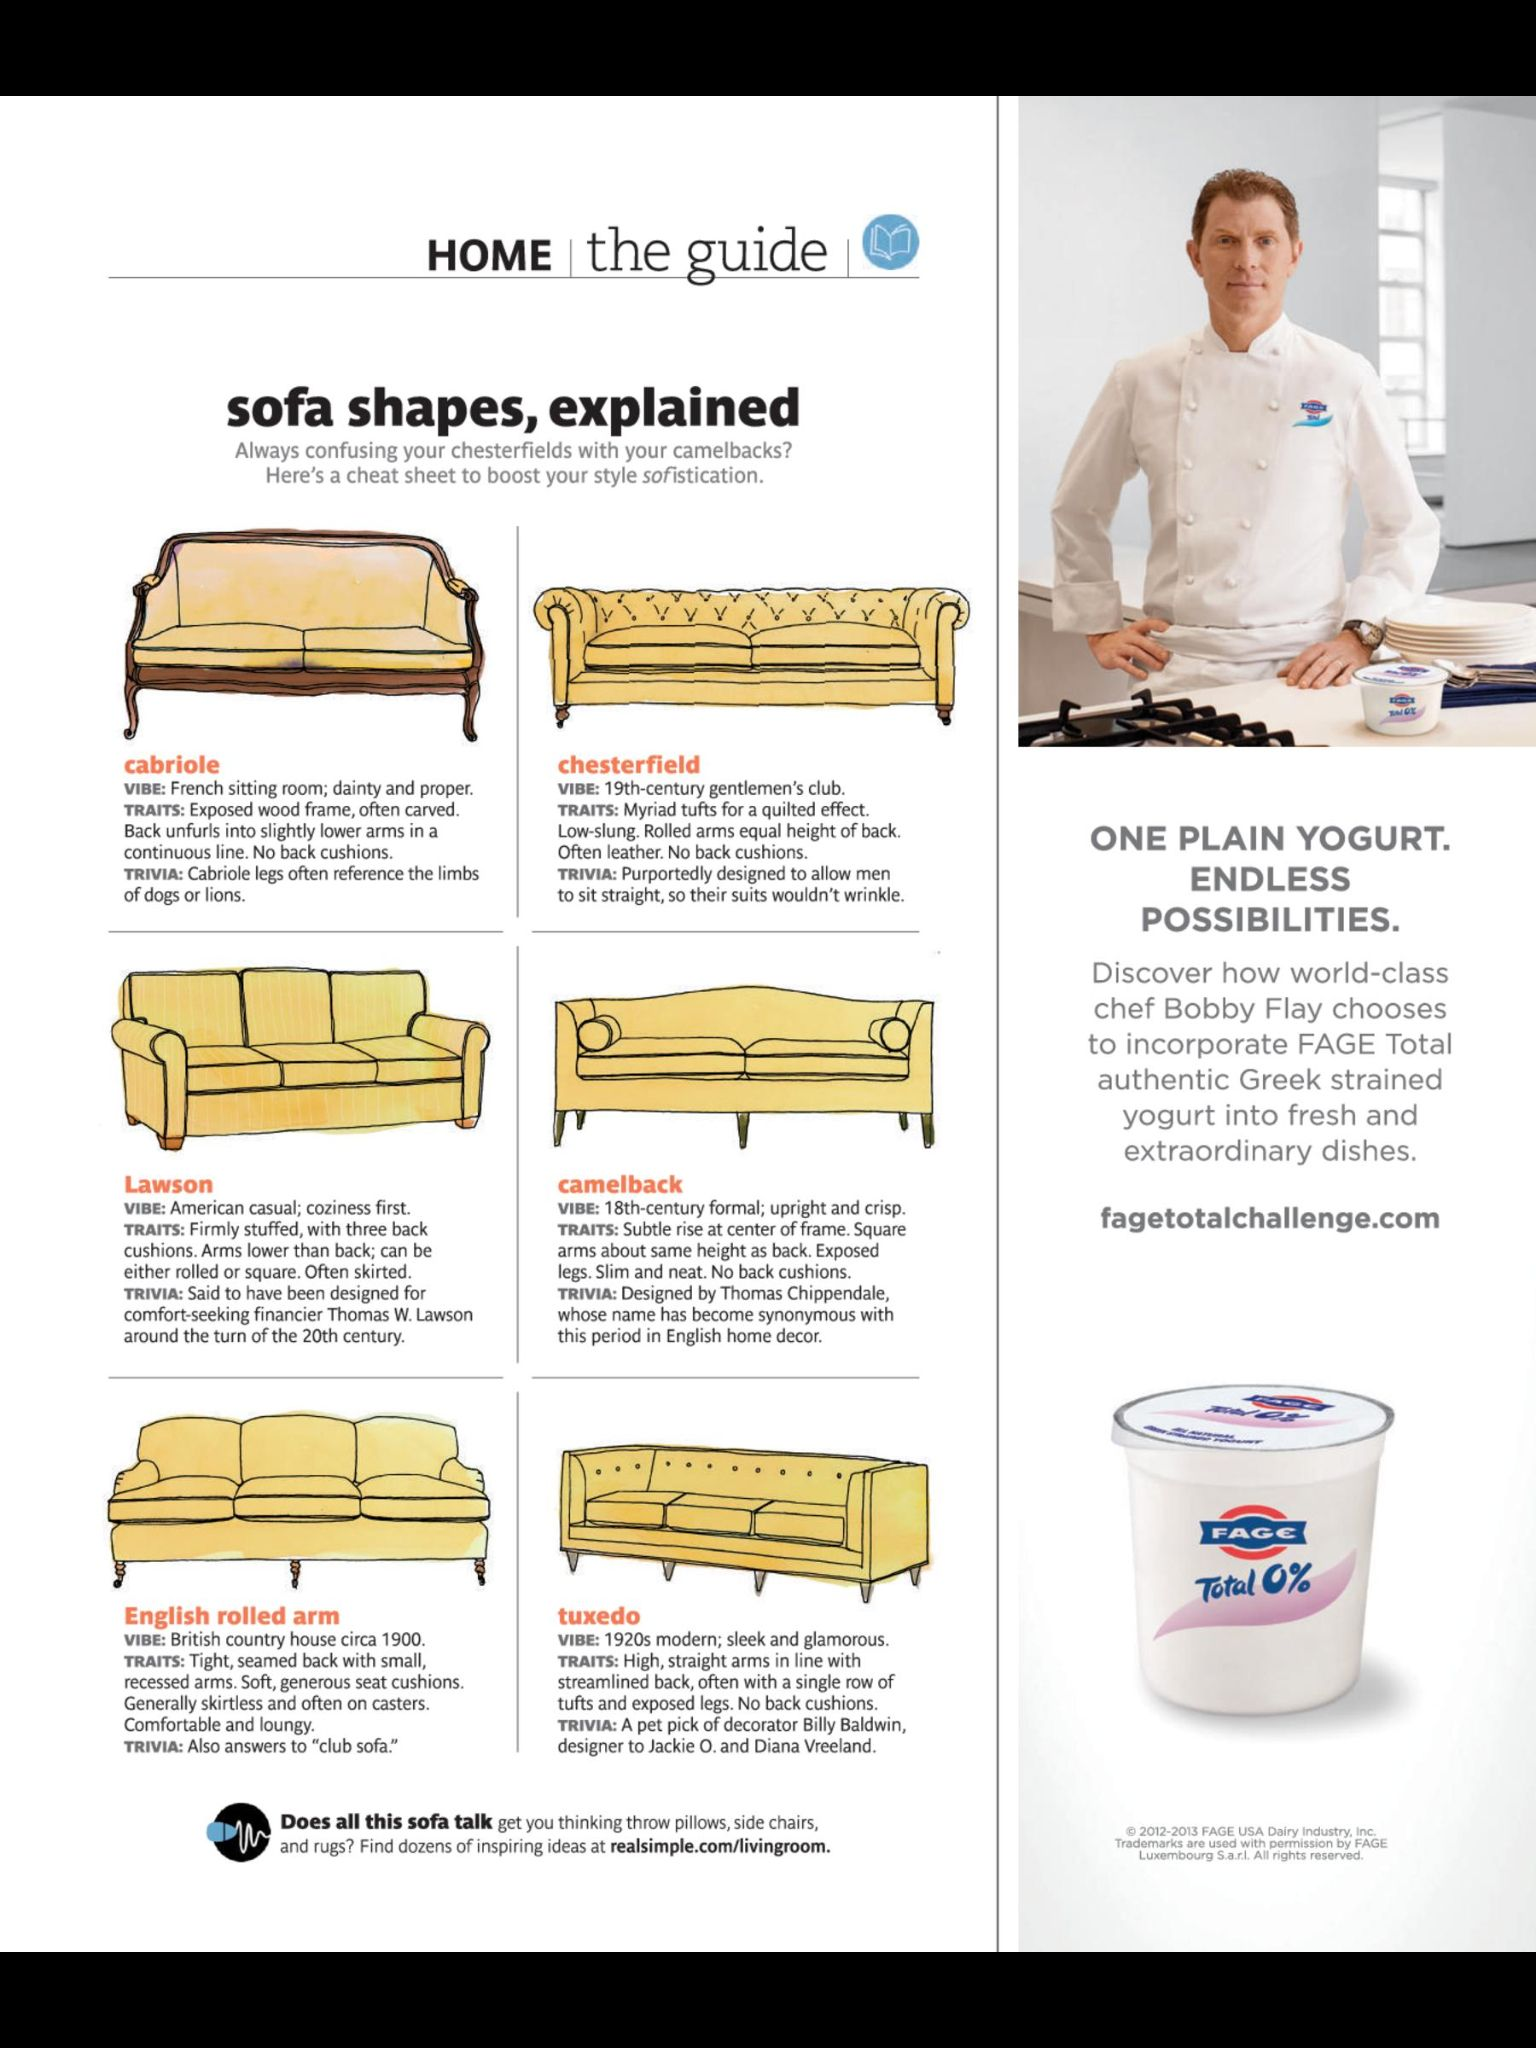 Sofa Shapes Explained Real Simple Magazine August Images Chef Bobby Flay